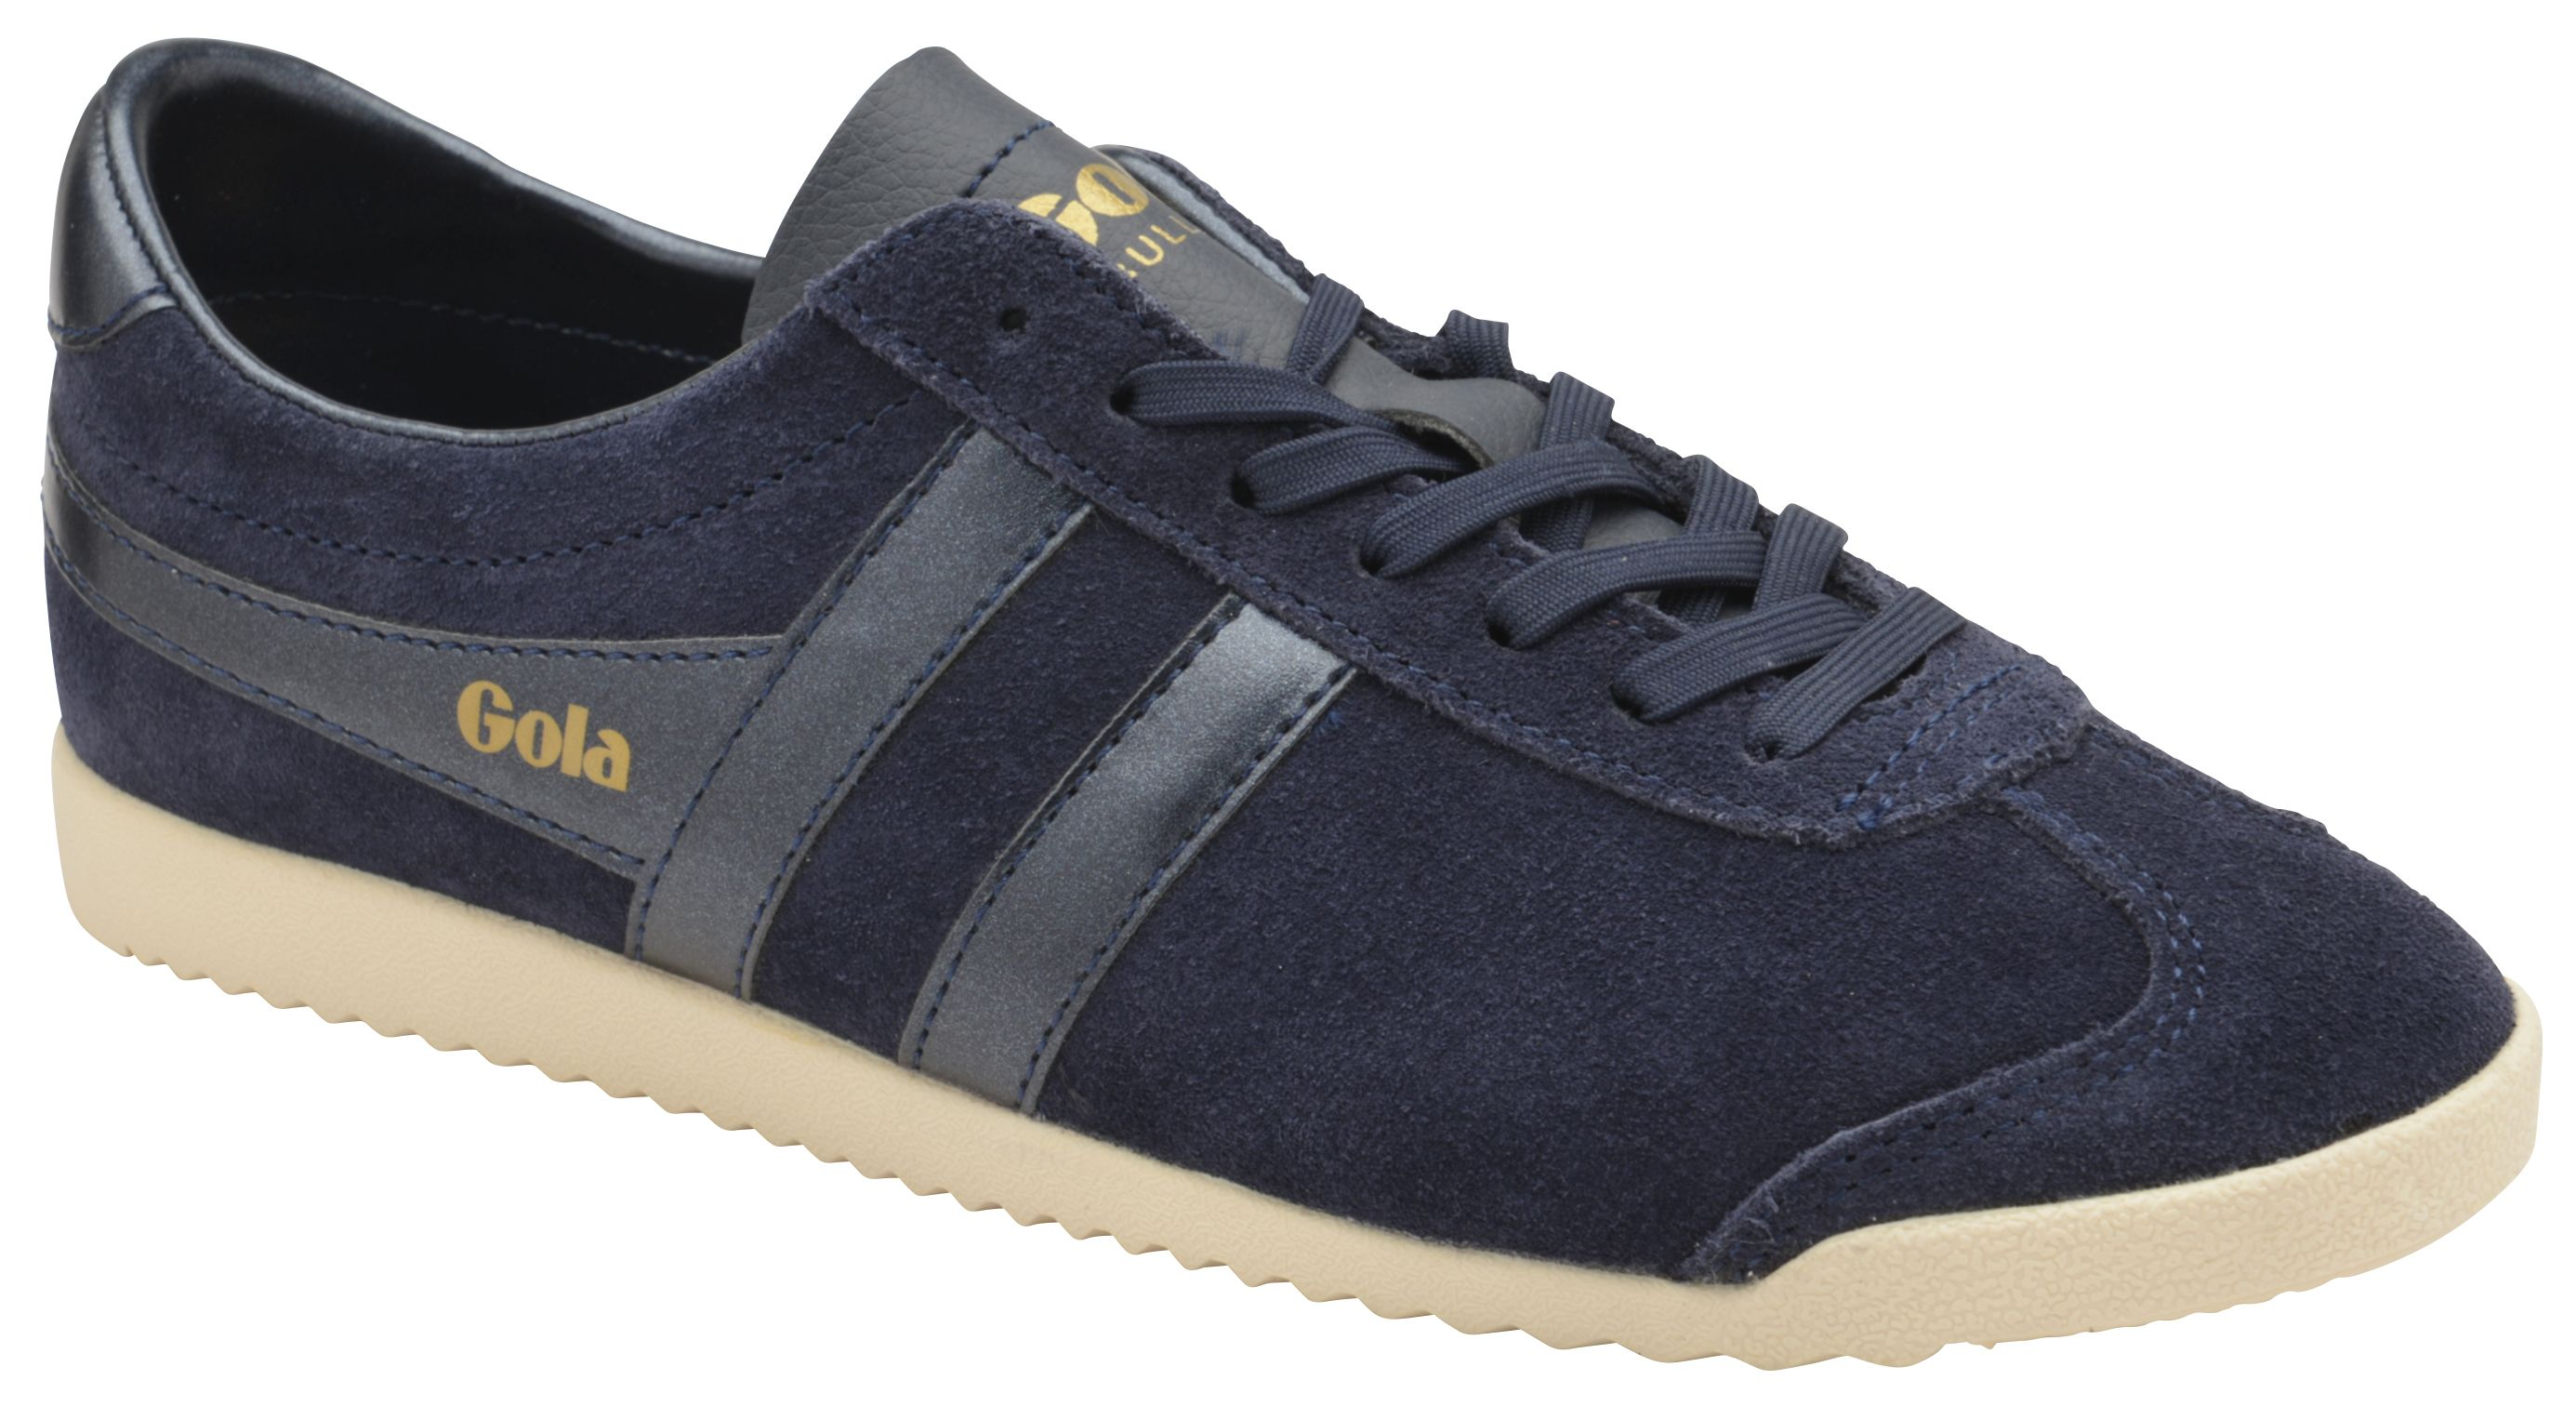 Gola Bullet Pearl Lace Up Trainers, Blue